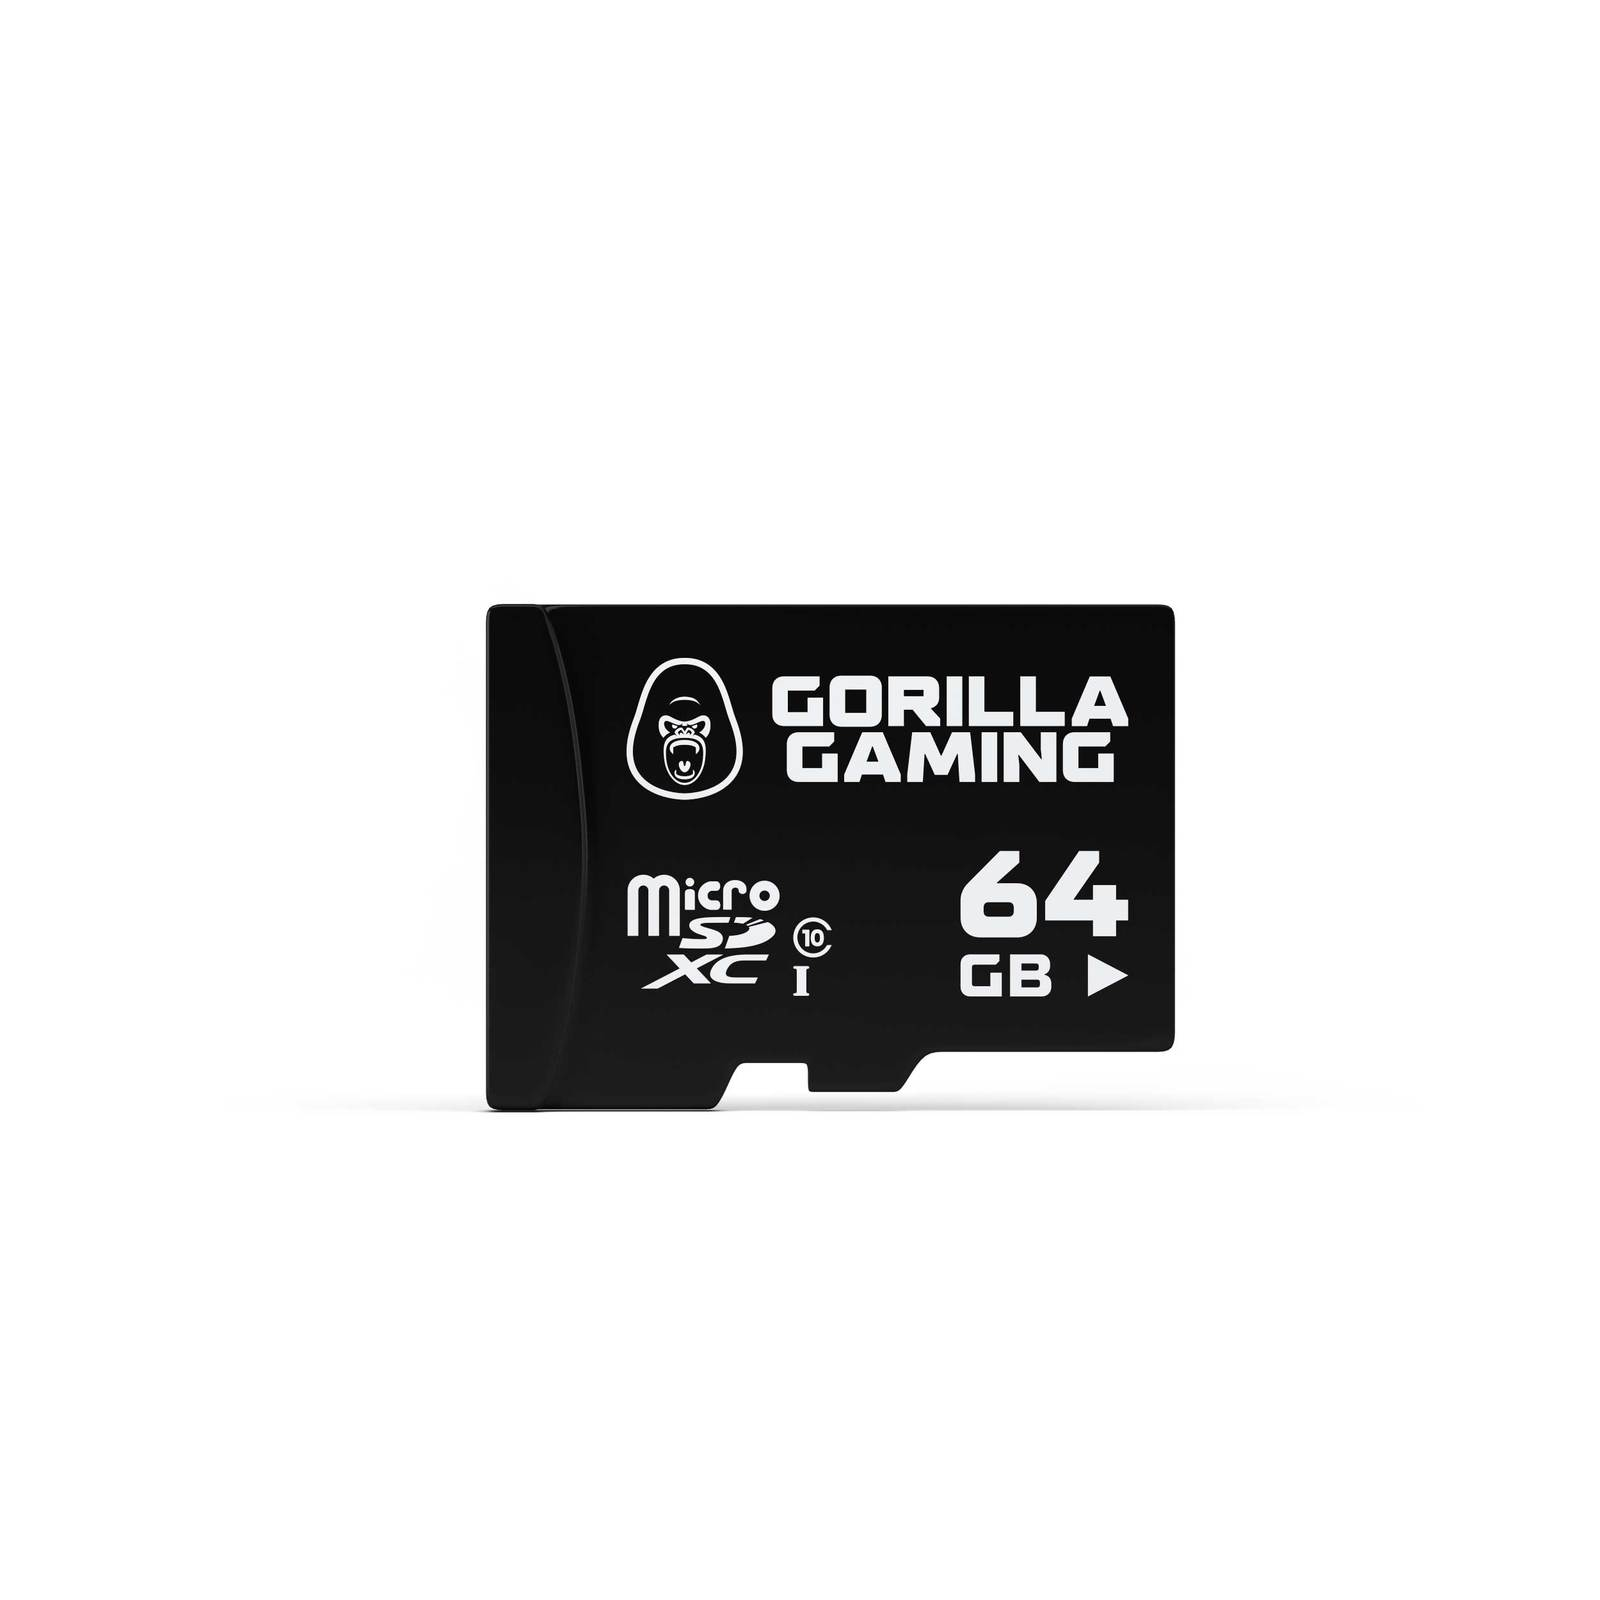 Gorilla Gaming Switch 64GB Memory Card for Switch image